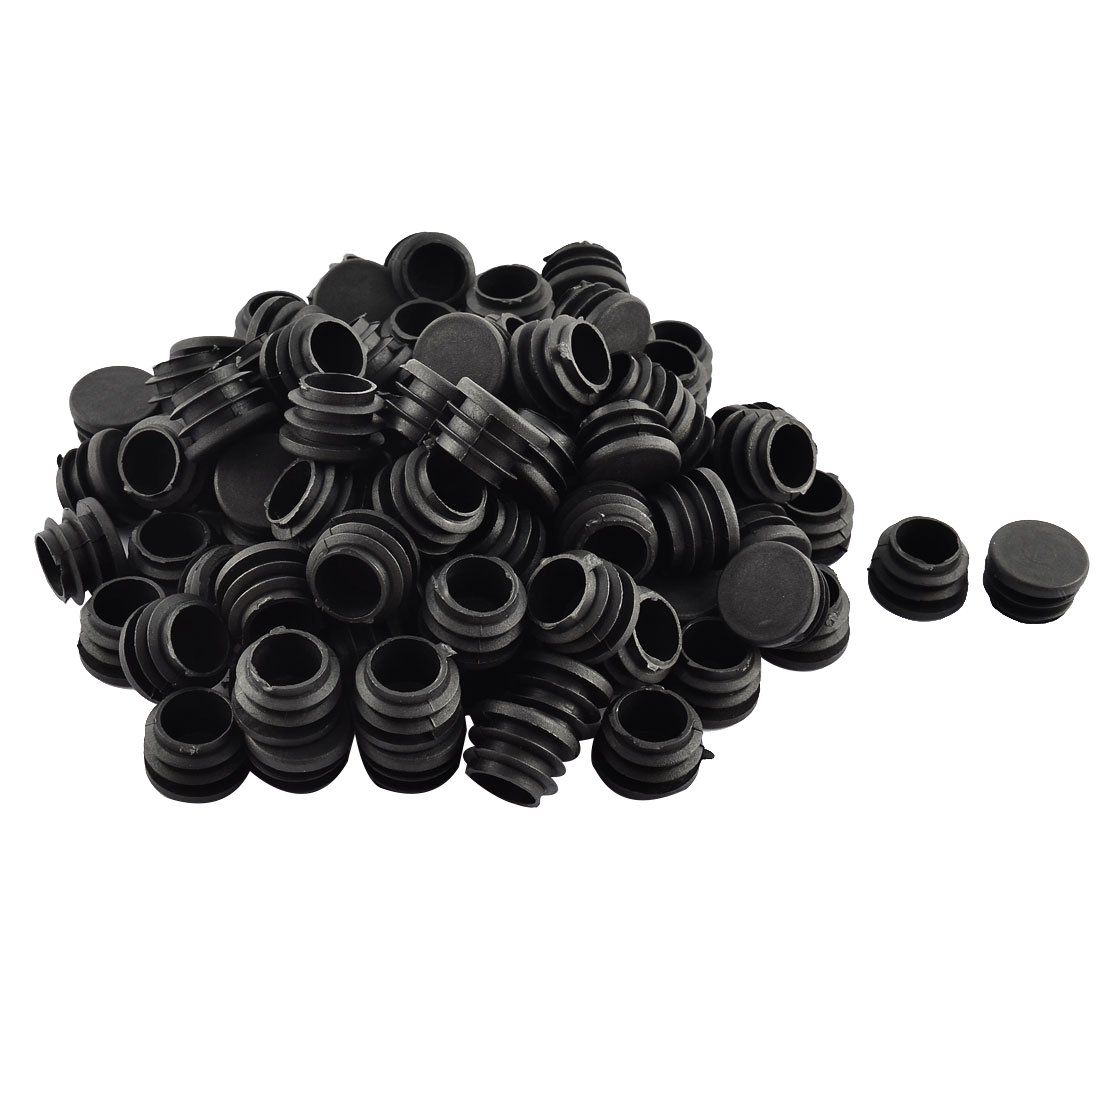 uxcell Plastic Floor Protect Round Chair Leg Pipe Tube Insert Blanking Caps 23mm Dia 100pcs a16062800ux0523